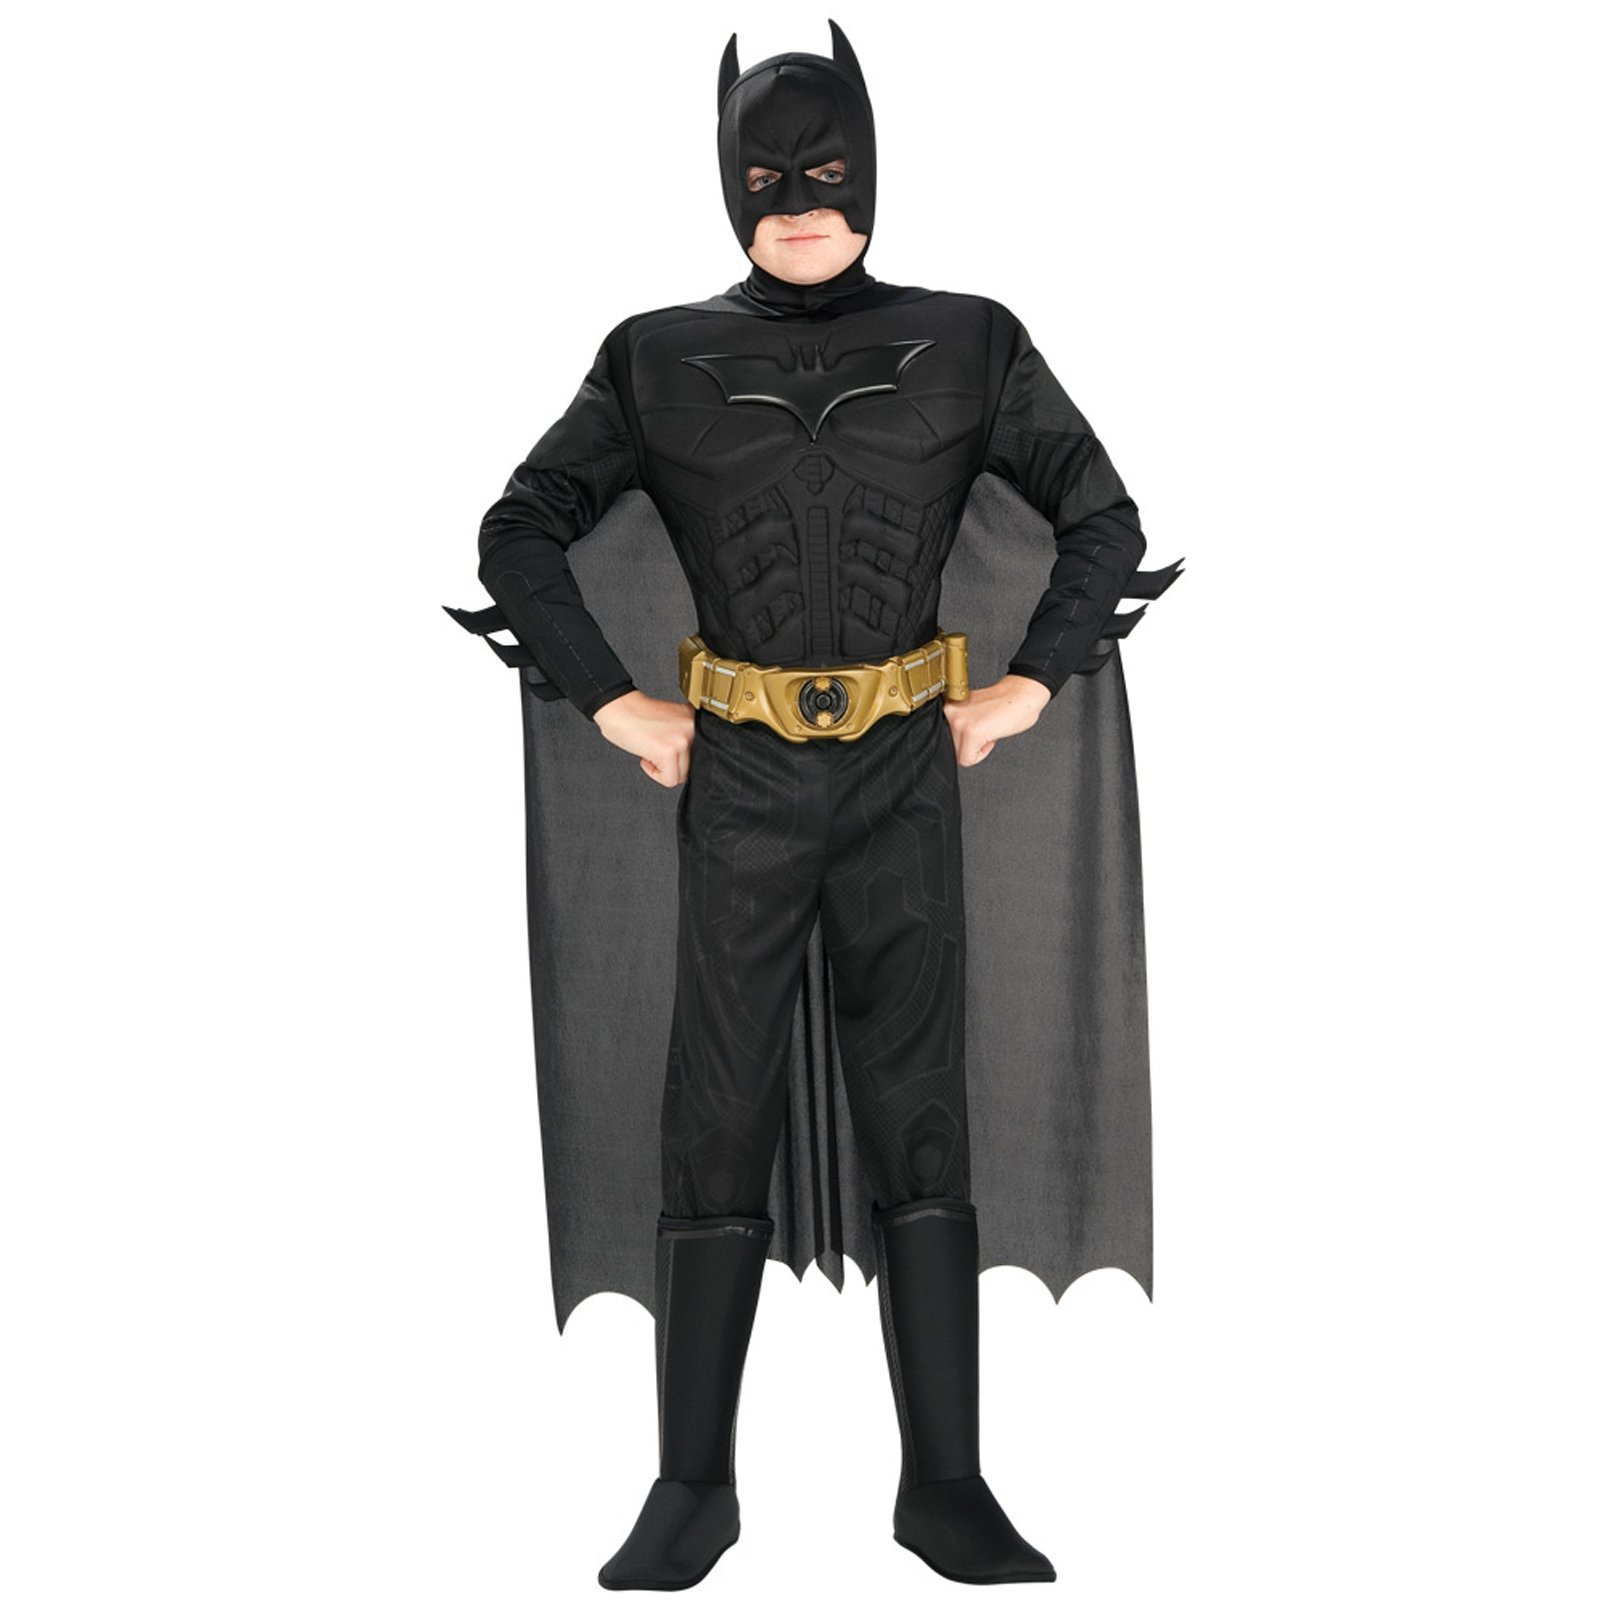 Batman The Dark Knight Rises Deluxe Muscle Chest Child Halloween Costume, Small (4-6)